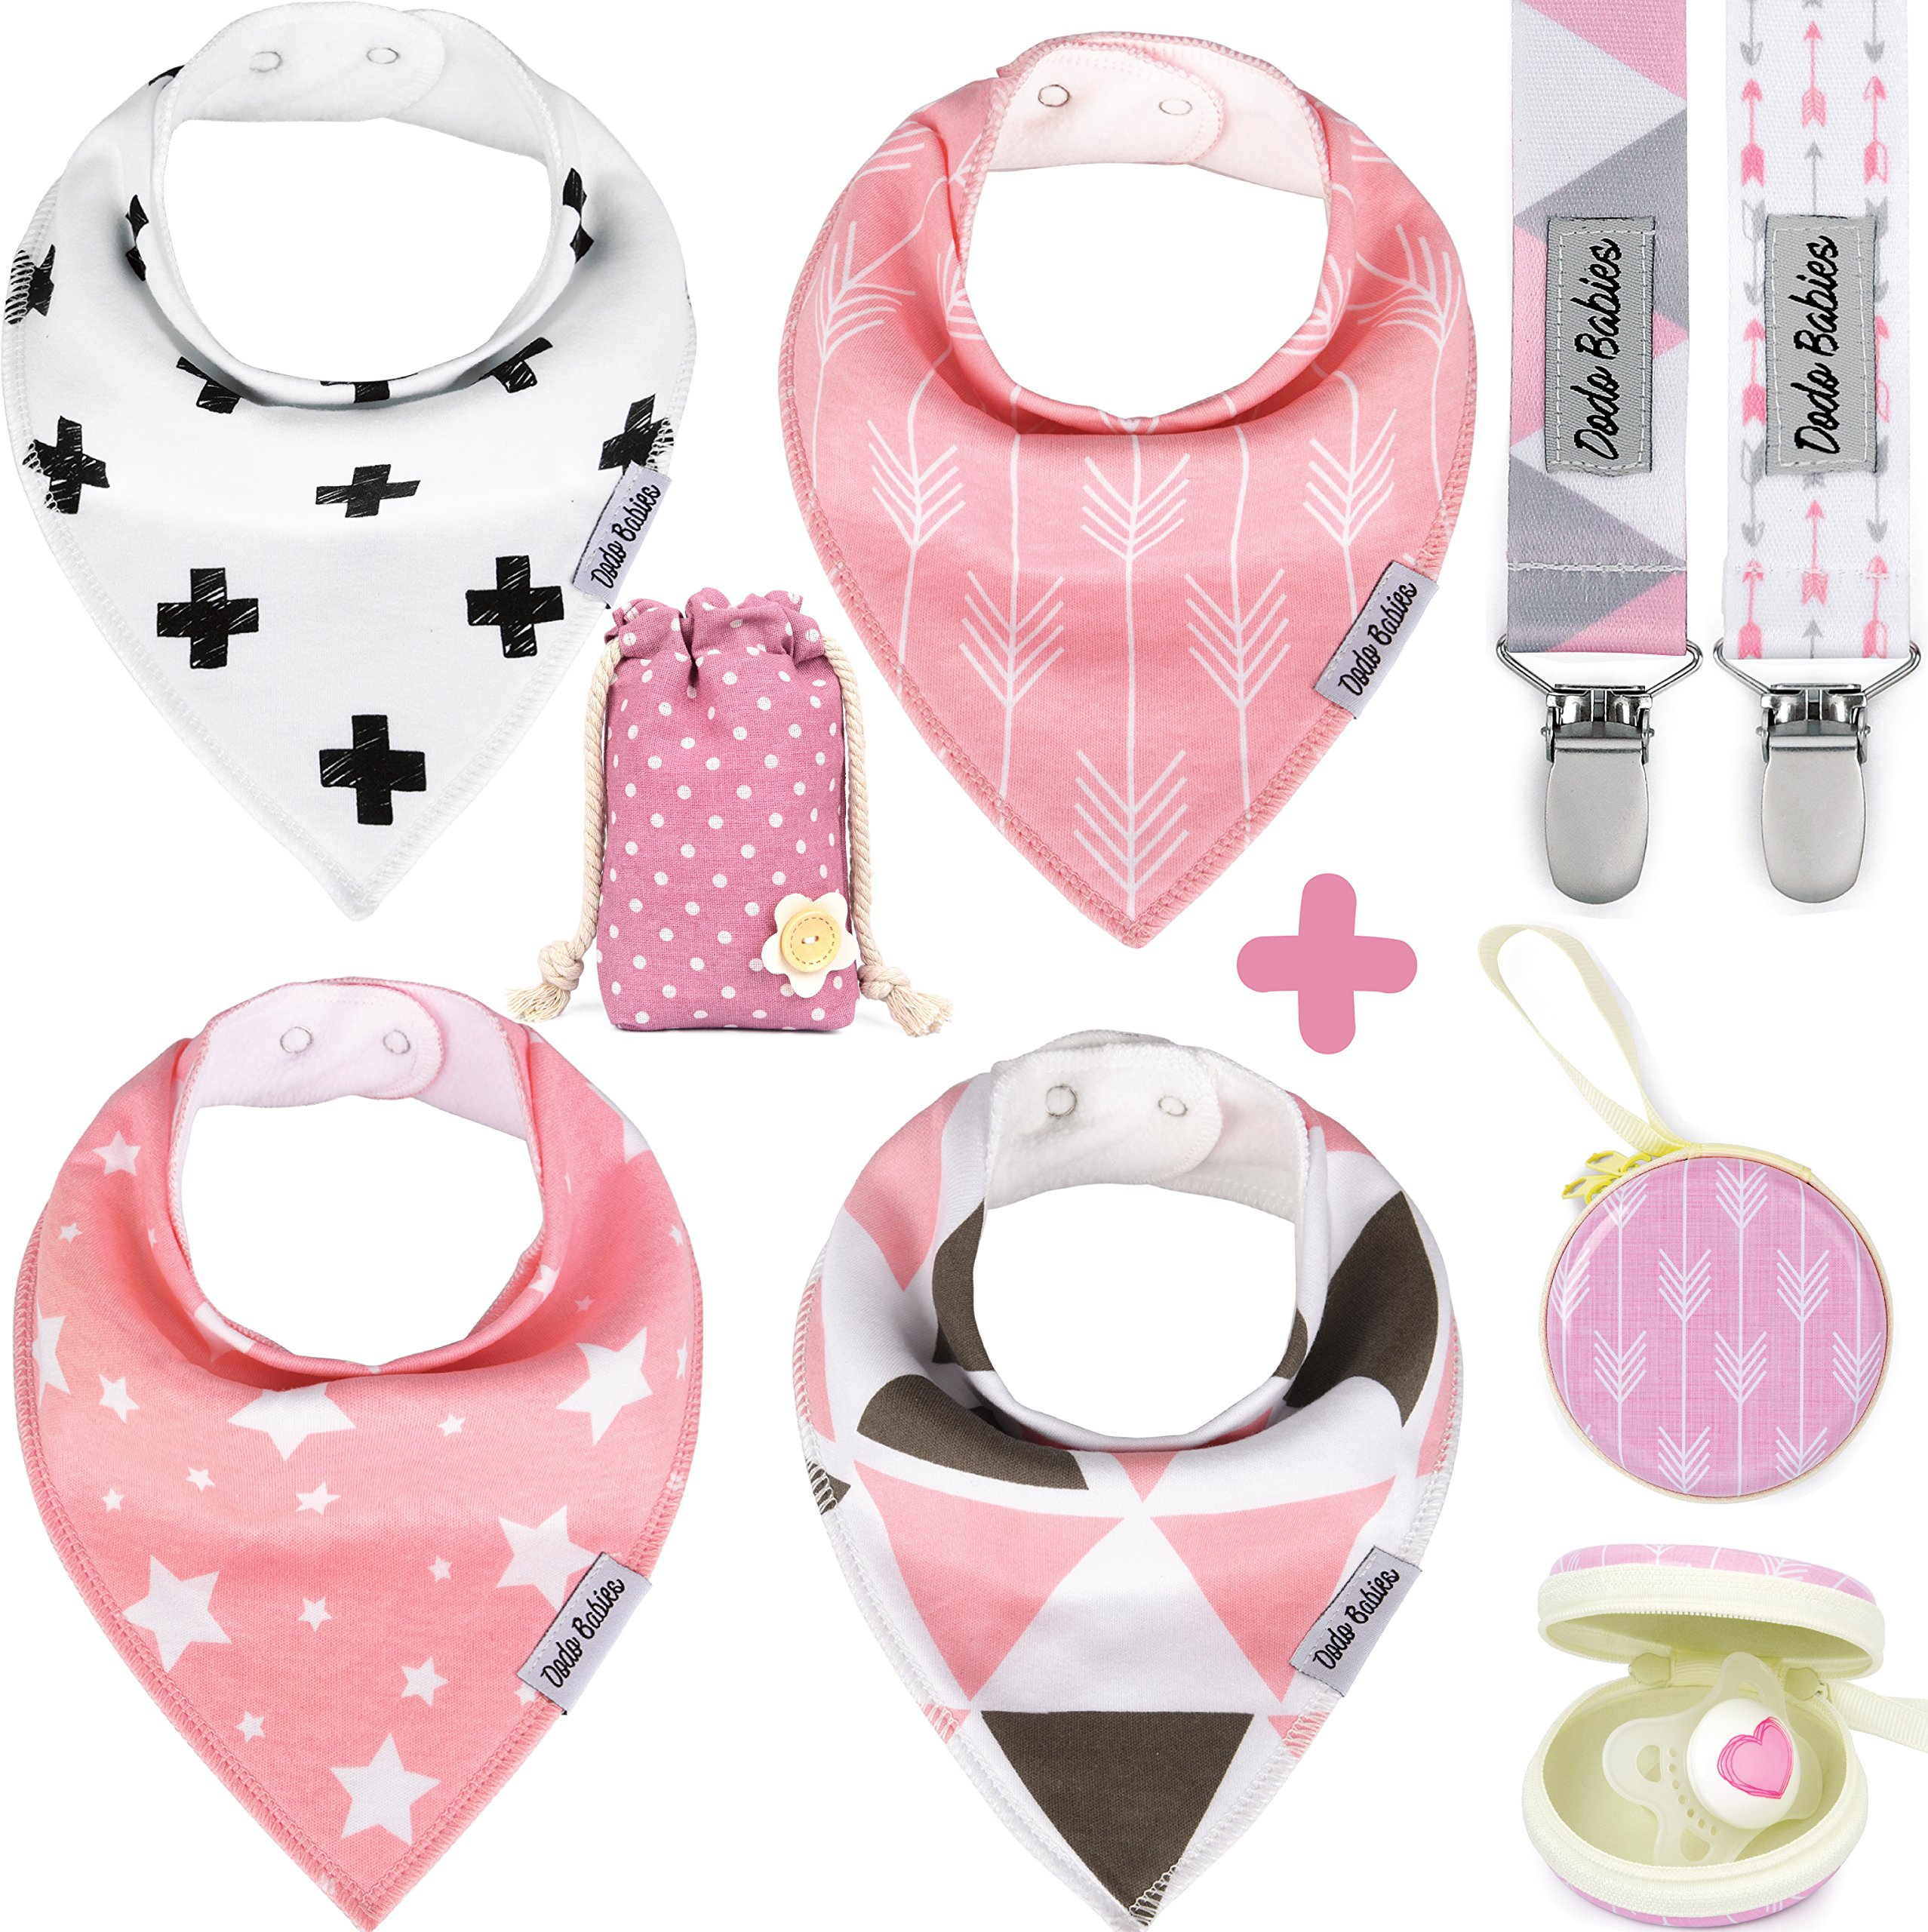 Baby Bandana Drool Bibs by Dodo Babies For Girls + 2 Pacifier Clips + Pacifier Case in a Gift Bag, Pack of 4 Premium Quality, Excellent Baby Shower / Registry Gift by Dodo